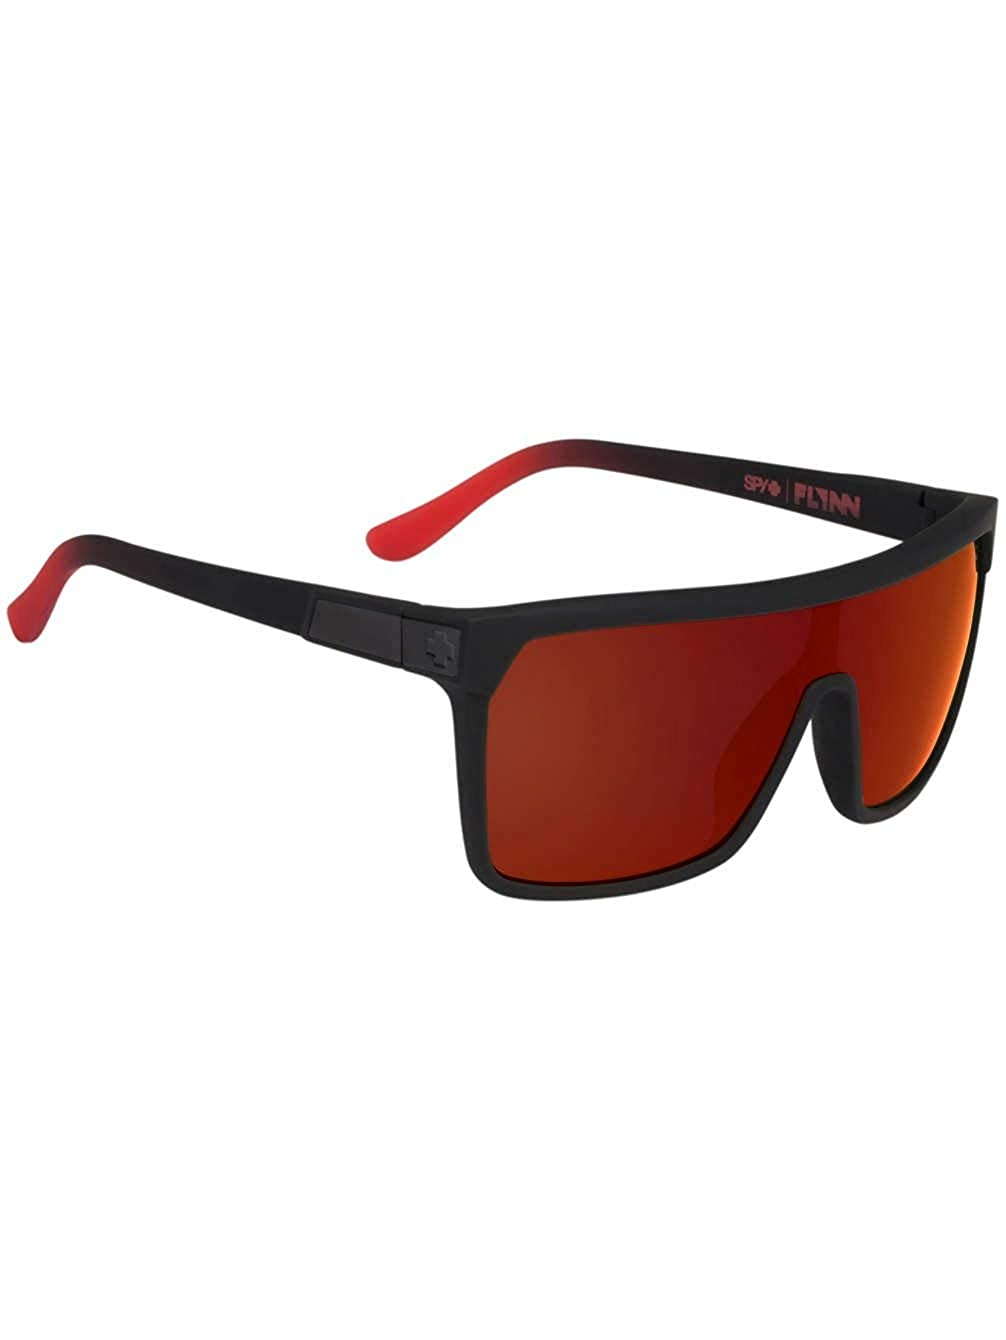 【在庫一掃】 New Men GREEN Sunglasses Spy Flash FLYNN BLACK Fade/MATTE BLACK - HAPPY GRAY GREEN B077GZMPXZ Soft Matte Black/Red Fade - Happy Gray Green W/Red Flash, sputnik jewelry:fe0cbc9b --- ballyshannonshow.com